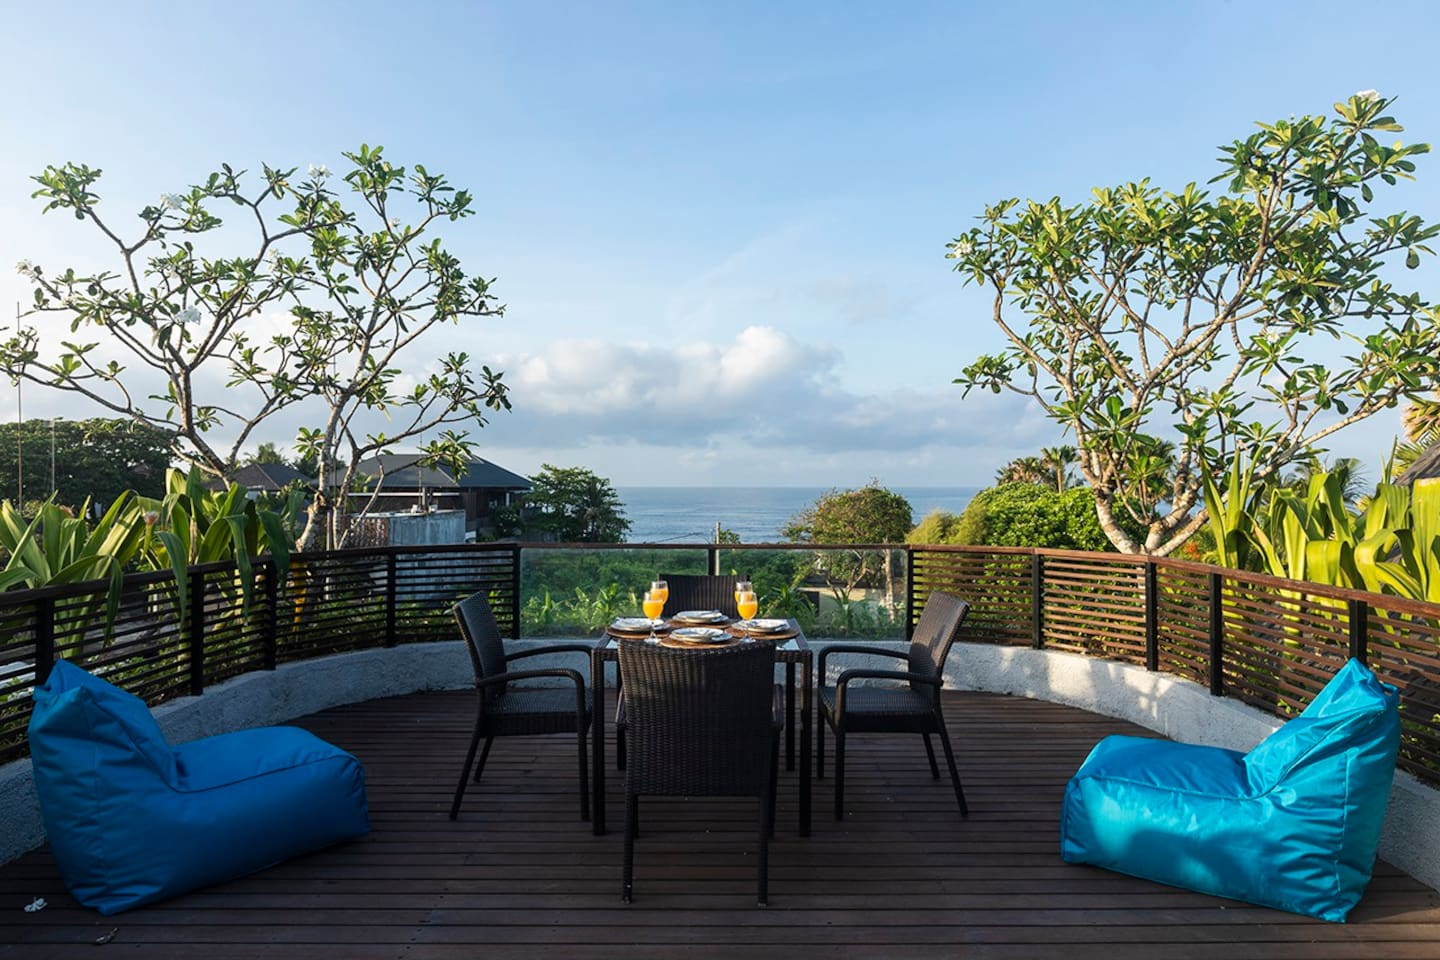 A spacious rooftop to enjoy the view of the sea and rice fields  or a gorgeous place for sunbathing.  No disturbance at all. Very quiet and a truly relaxing place